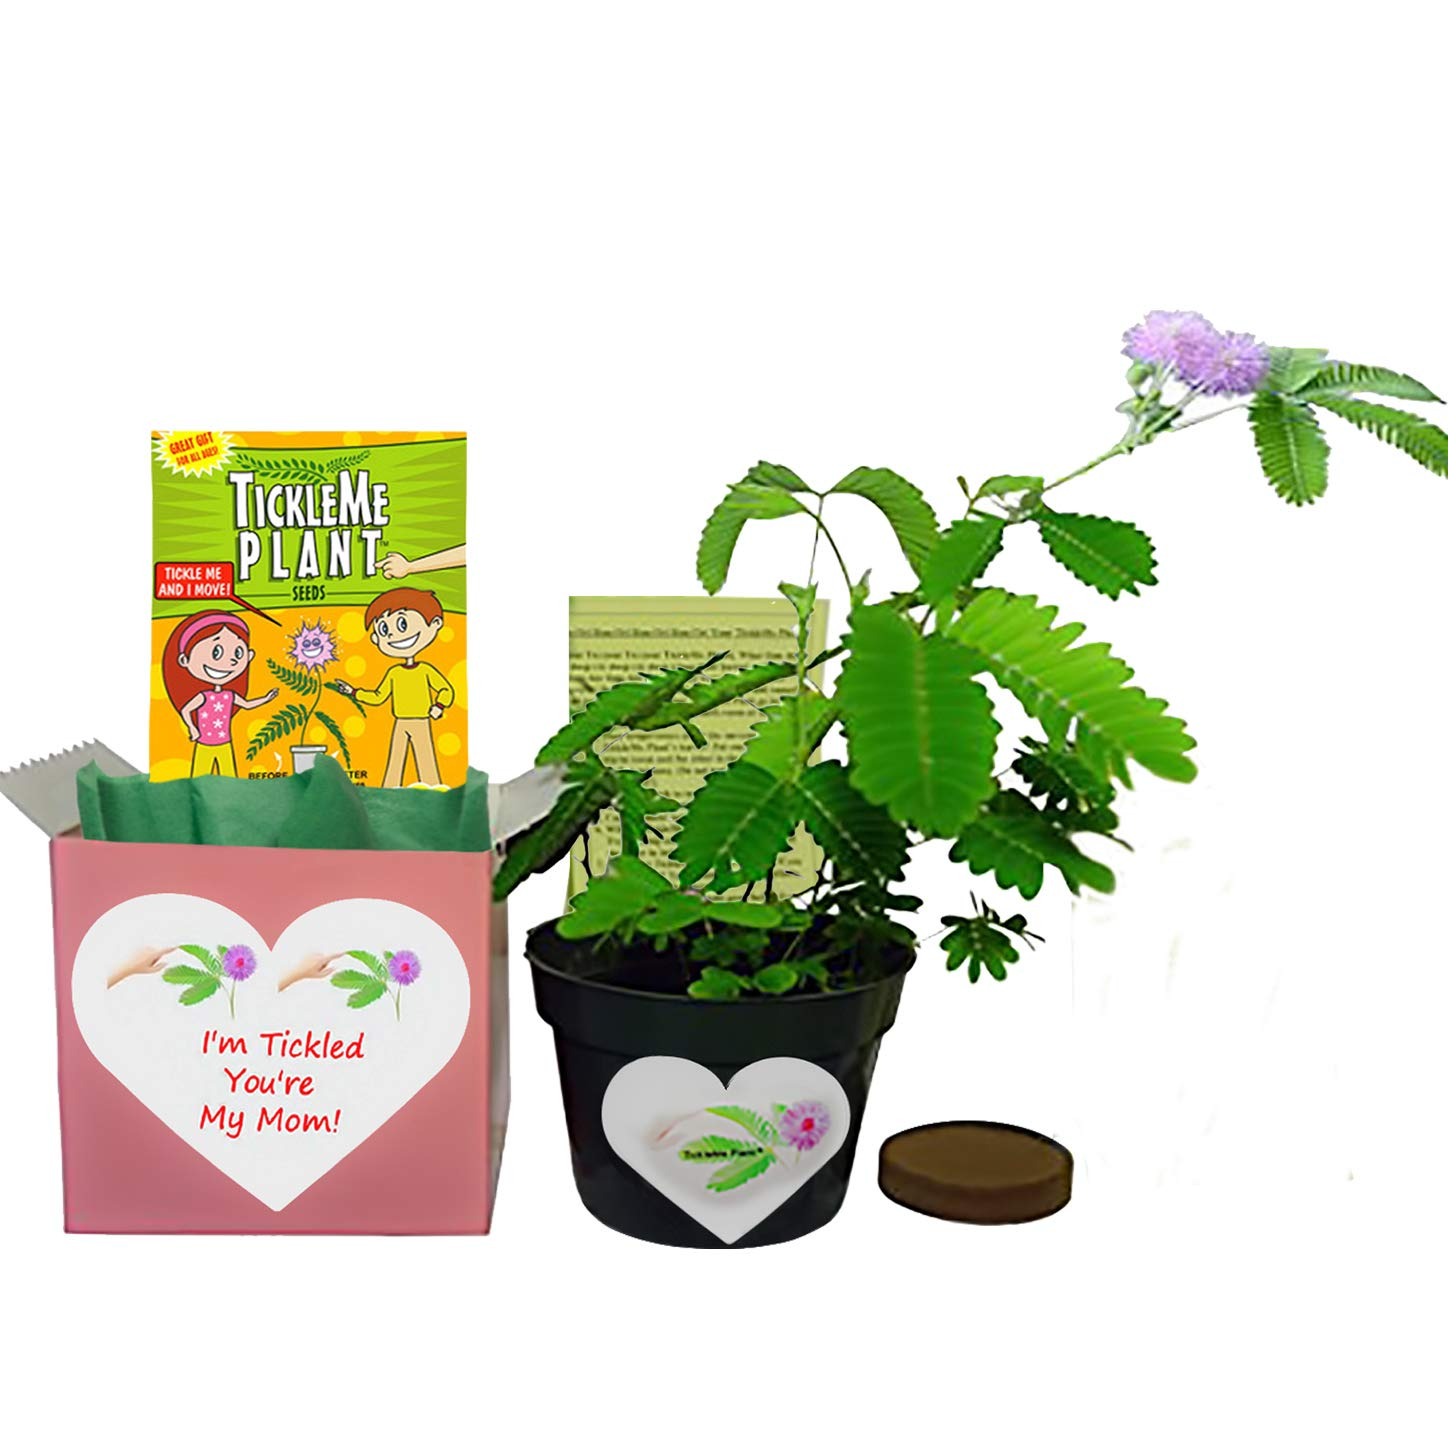 Mother's Day/Birthday TickleMe Plant Gift Box Set - To grow the Plant that closes its leaves when you Tickle it or blow it a Kiss! It even grows Pink Flowers! ''I'm Tickled You're My Mom! by TickleMe Plant